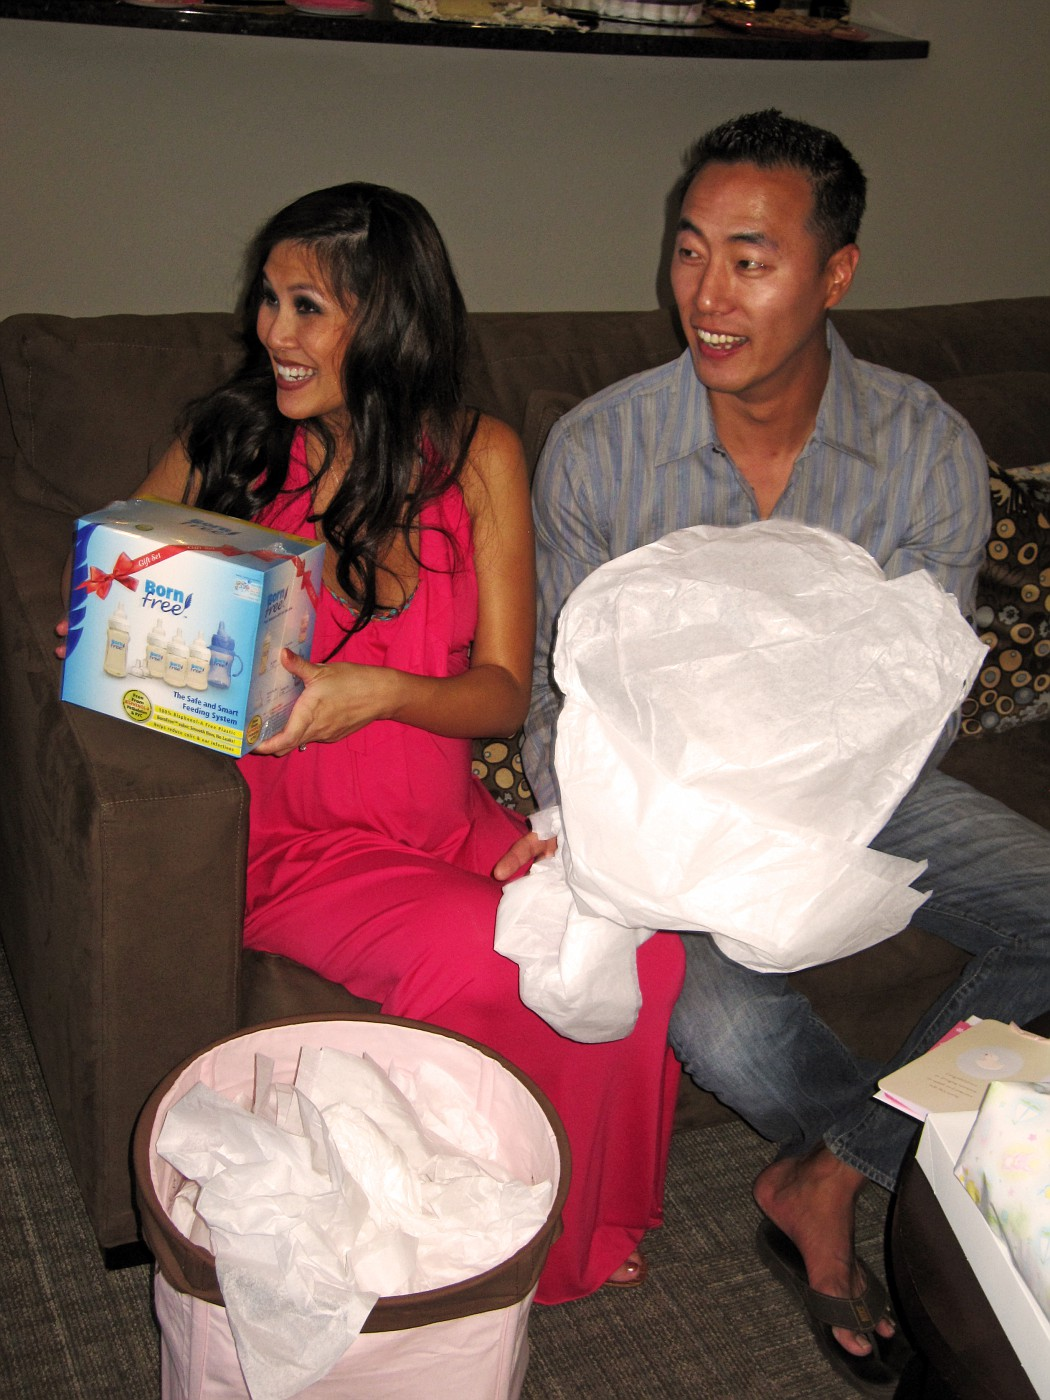 Our baby shower photo 13